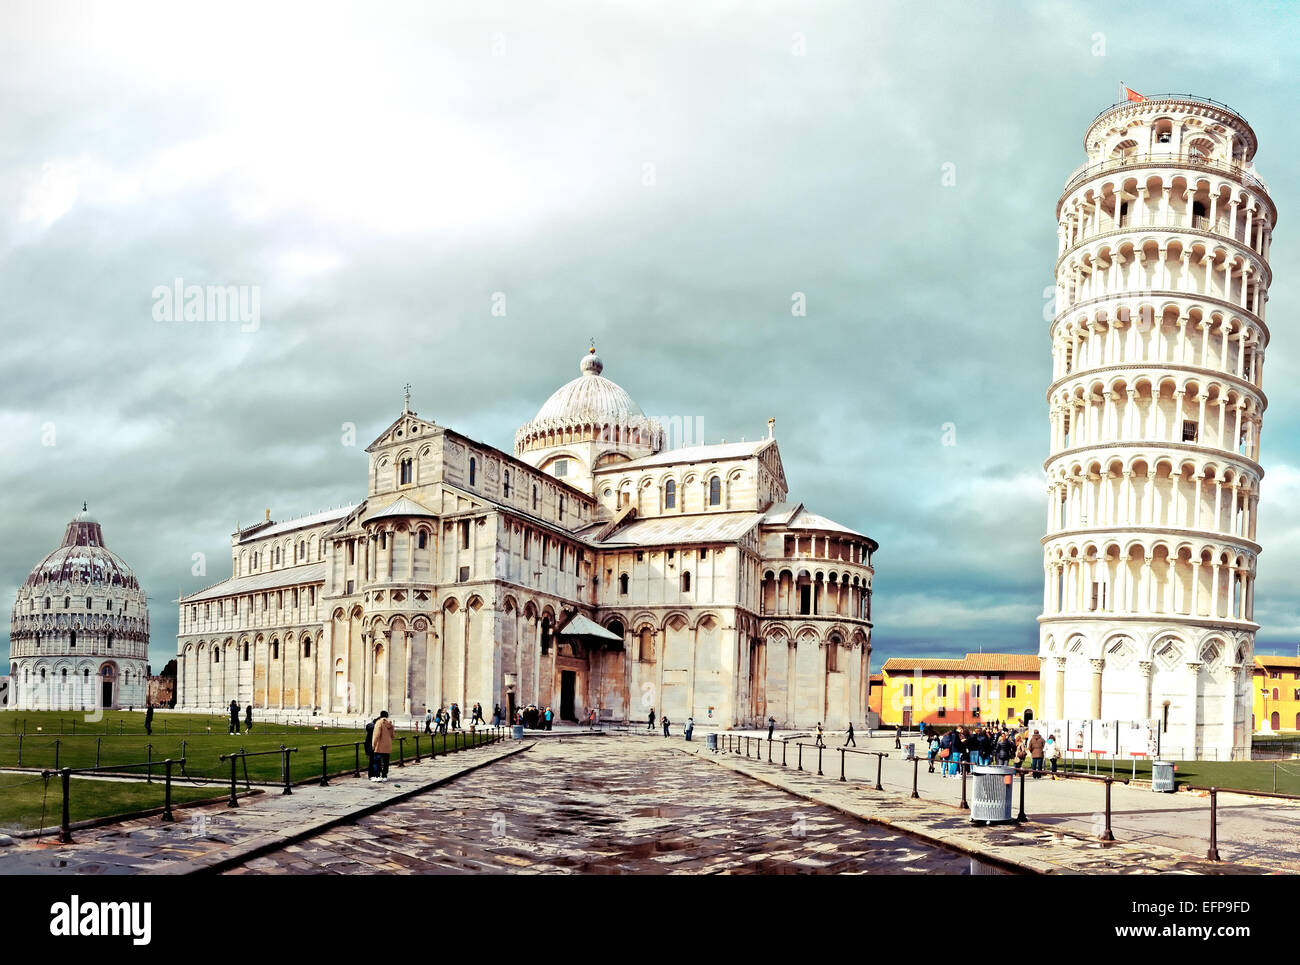 Pisa, Italy - March 18, 2013: tourists visiting the world famous leaning tower in Pisa, Italy. Up to 4, 5 million - Stock Image